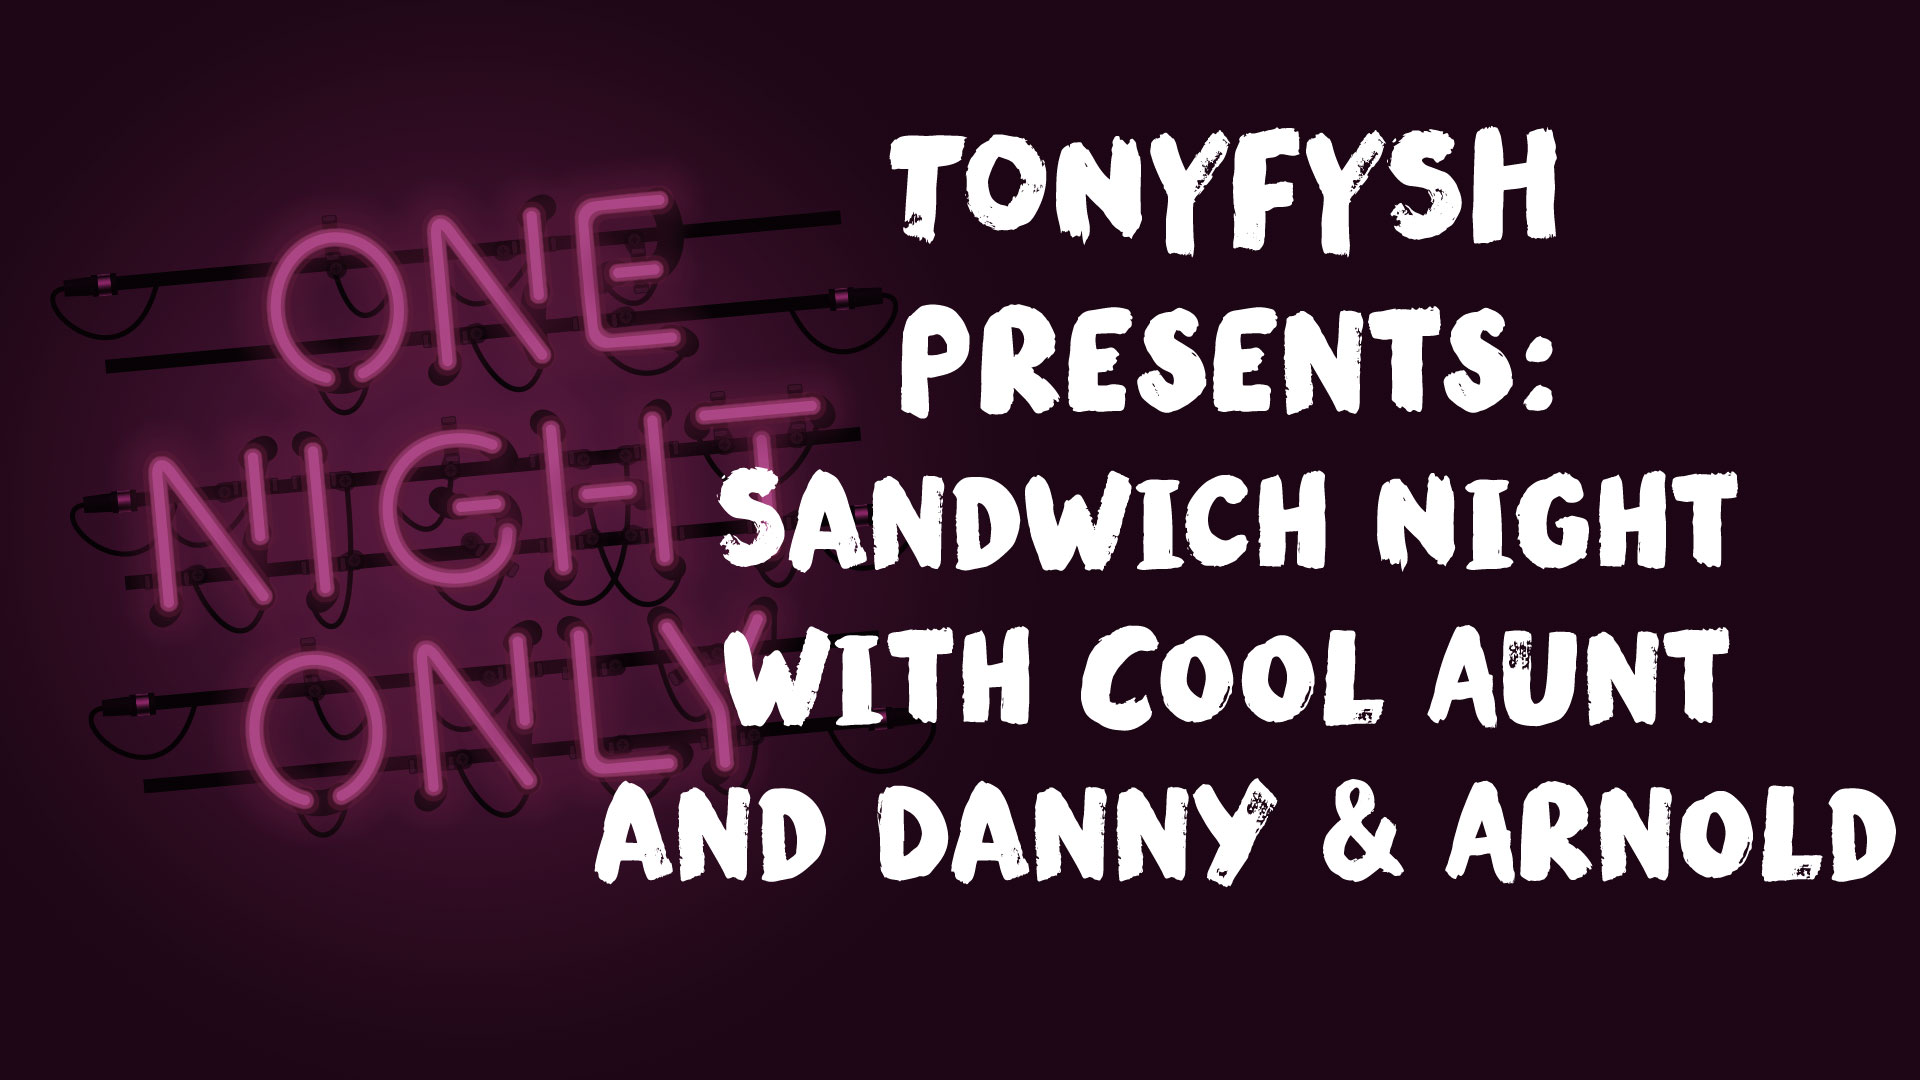 TONYFYSH presents Sandwich Night with Cool Aunt and Danny & Arnold